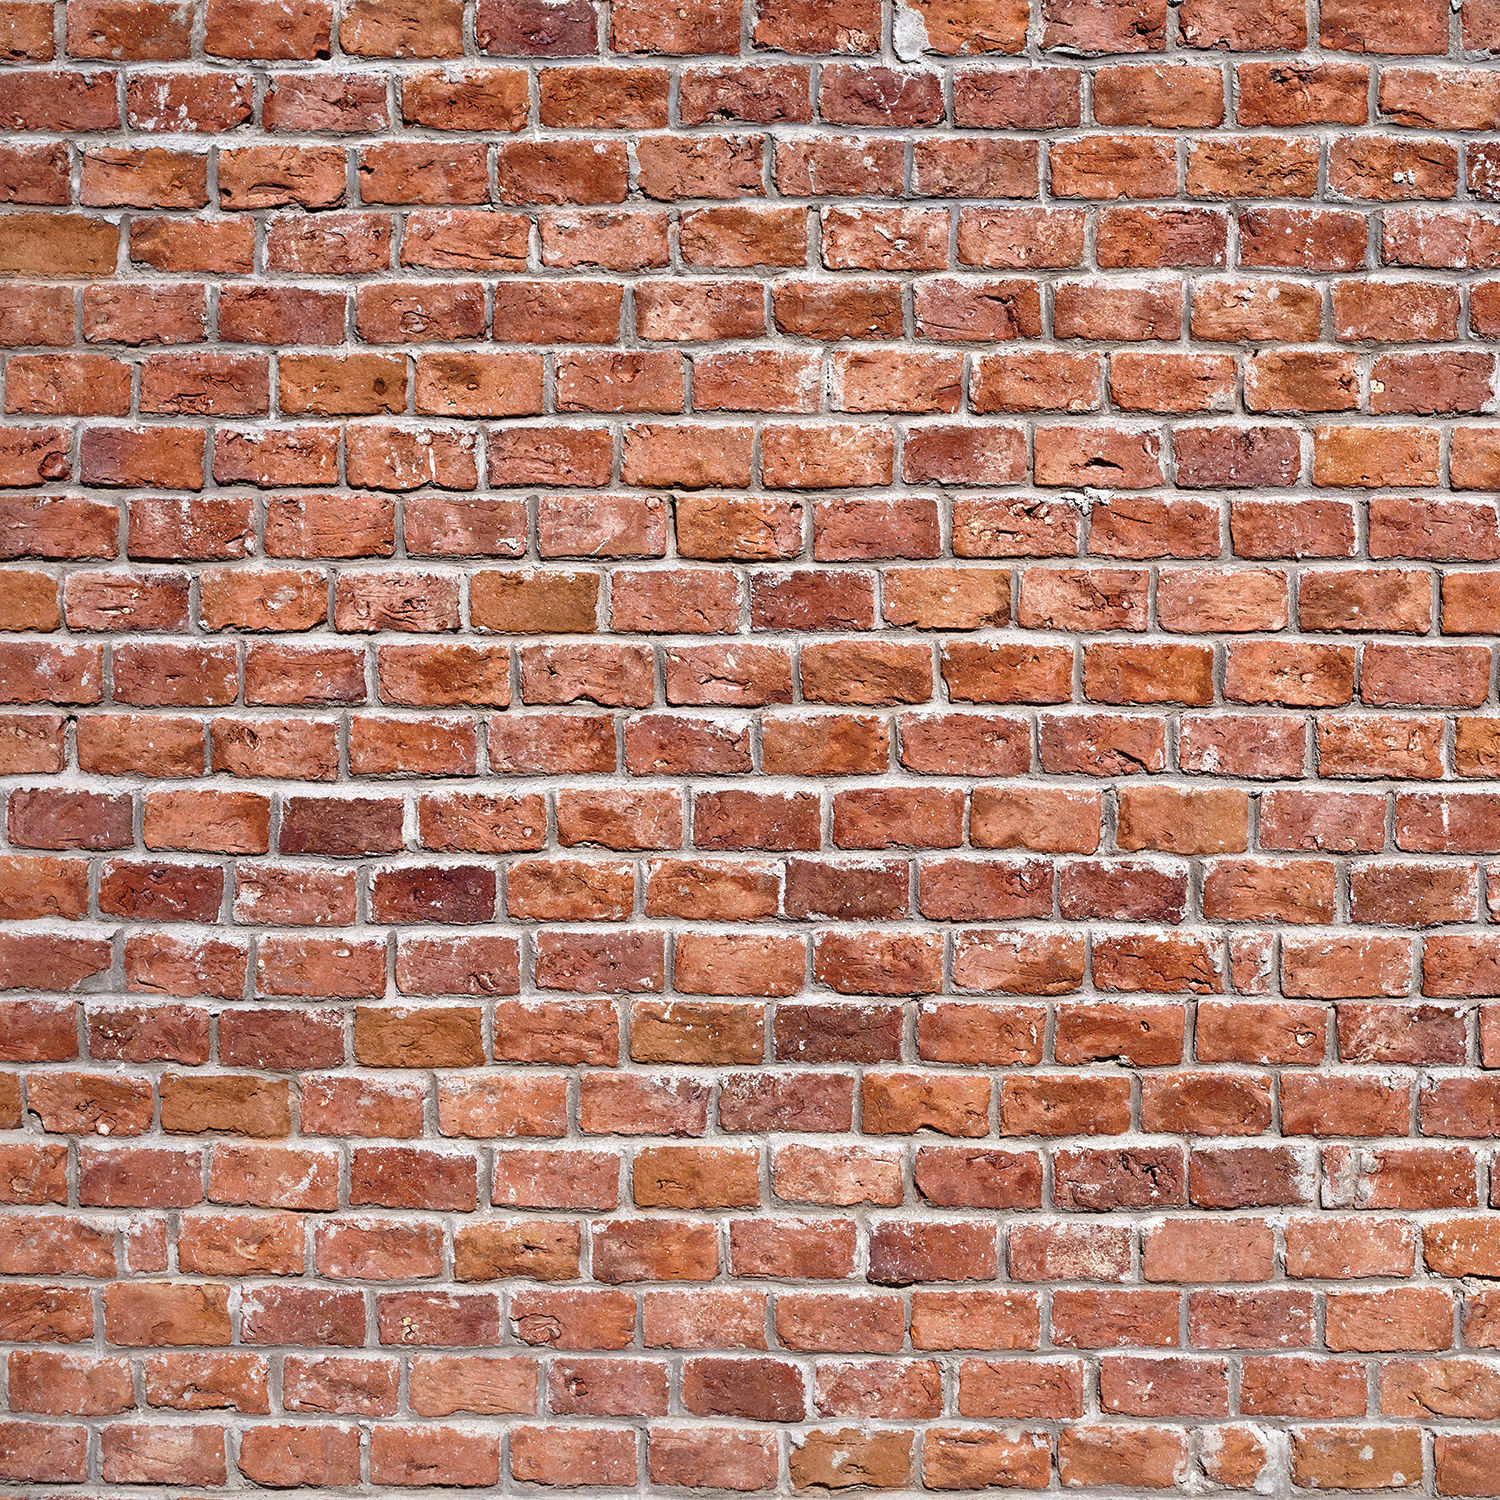 how to put a hook on a brick wall